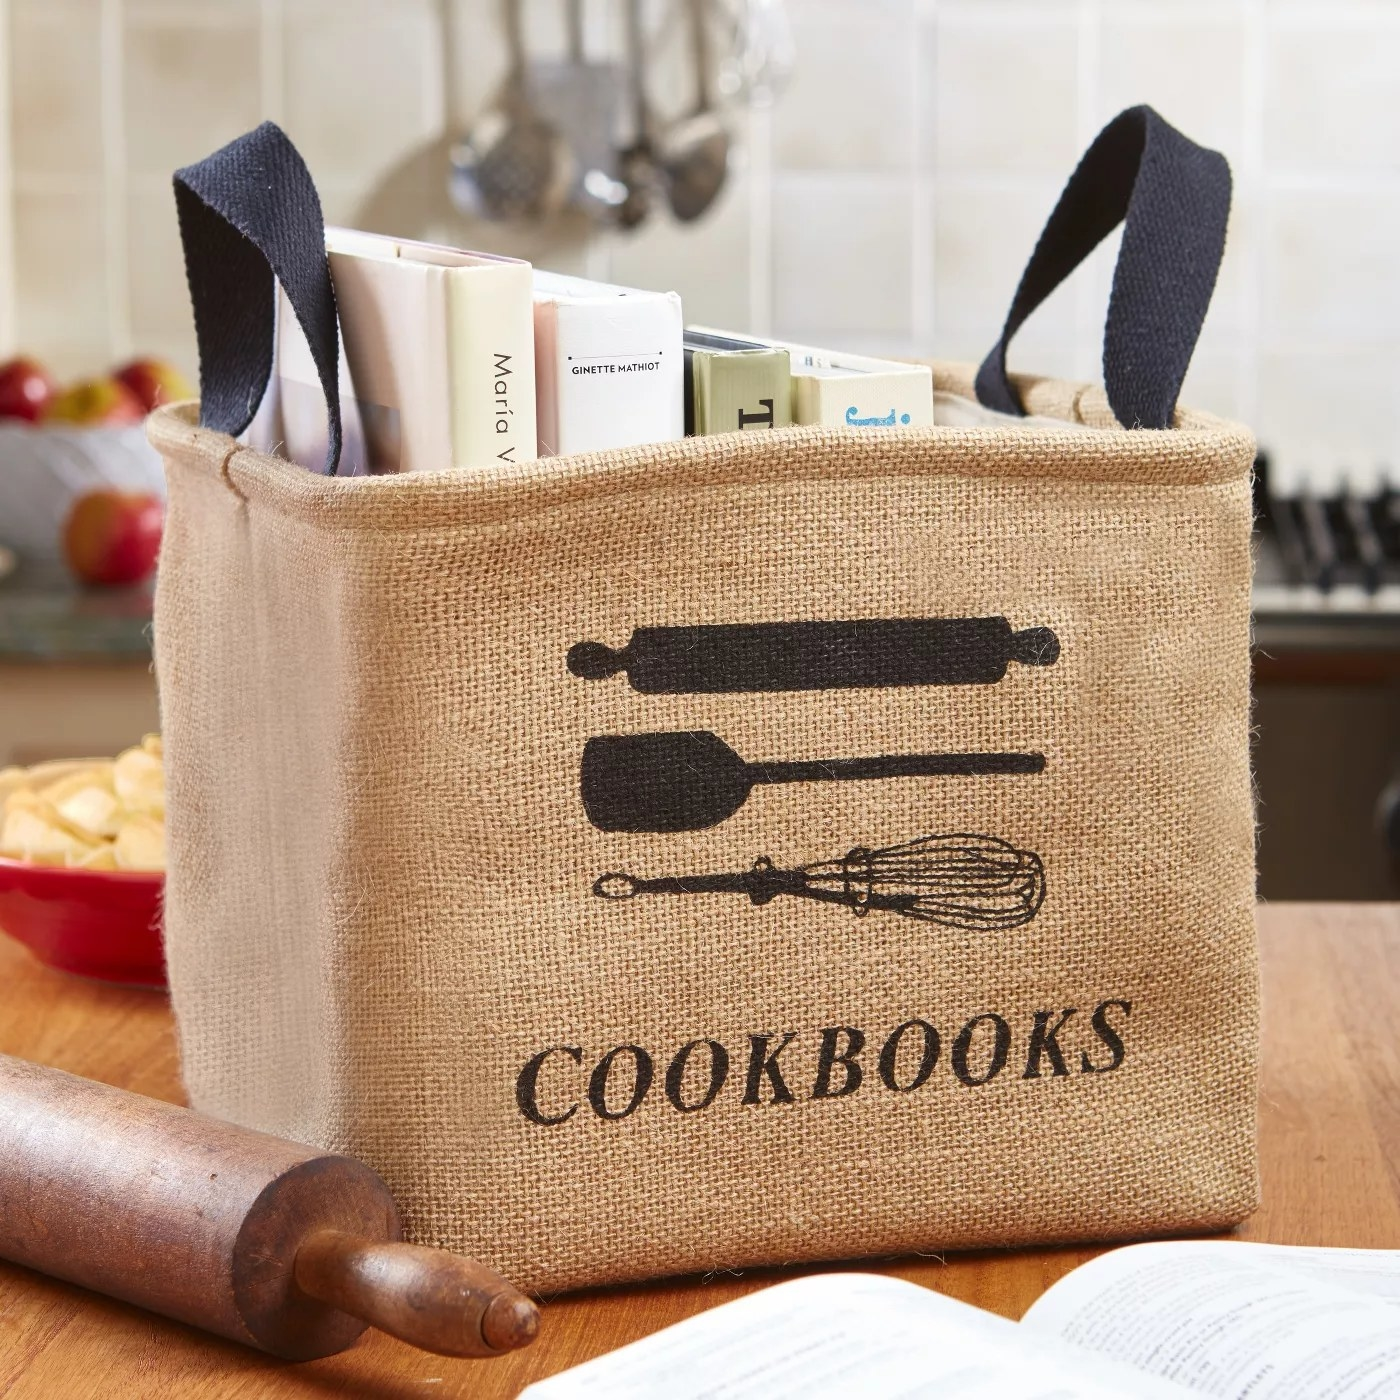 The basket with filled with cookbooks